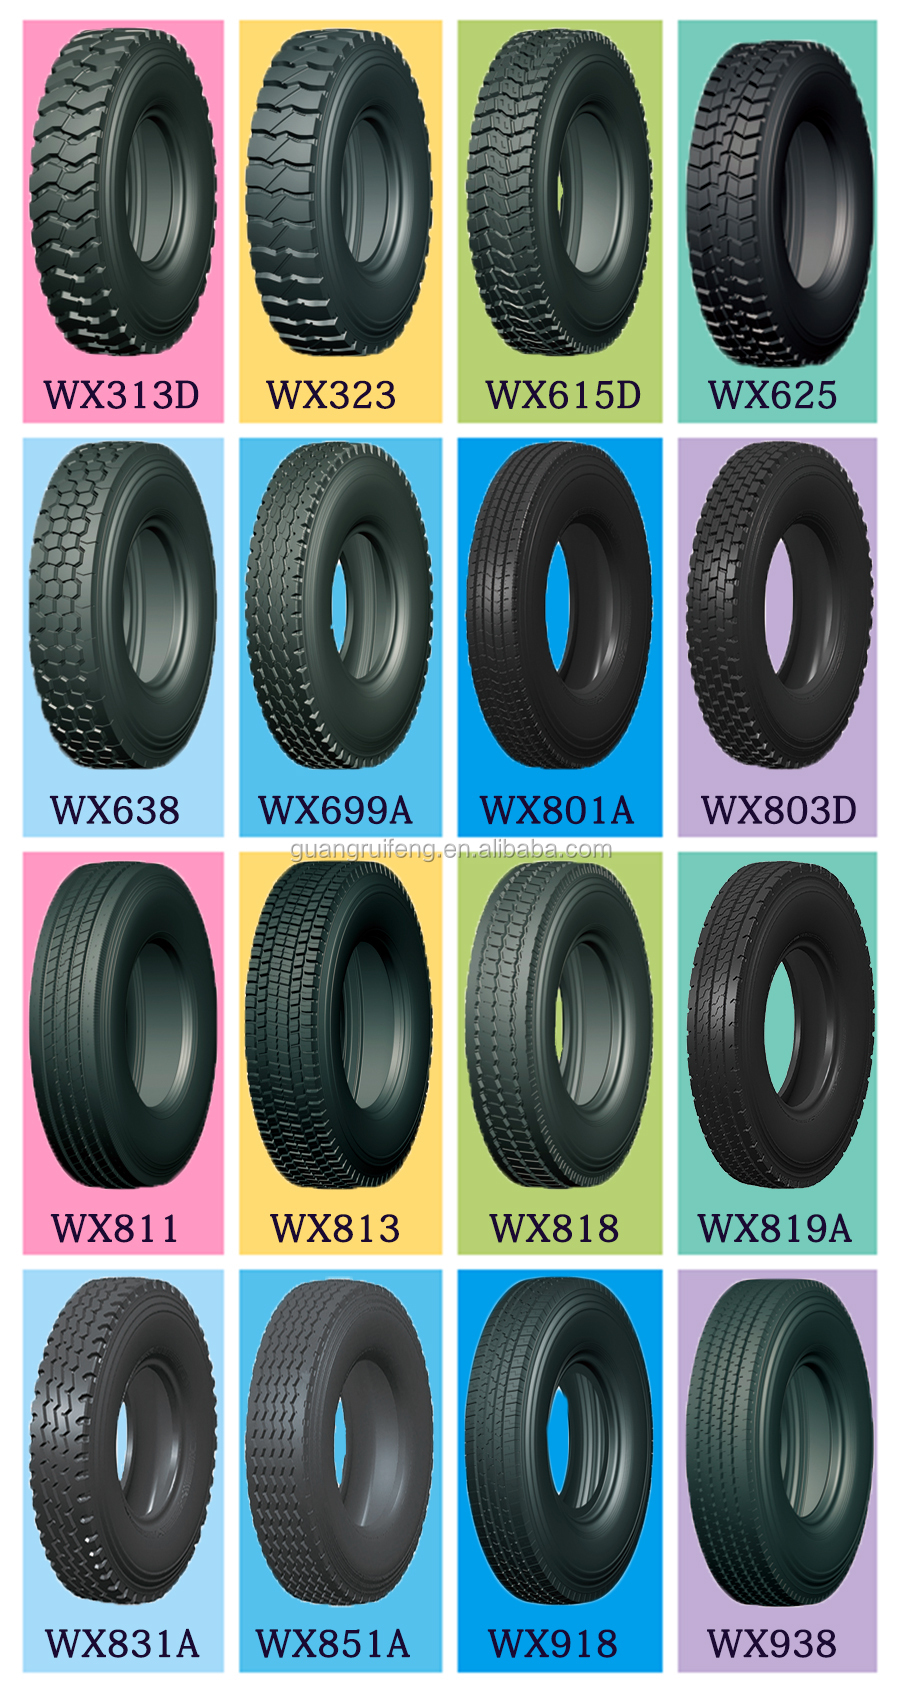 New Names For Companies Japanese Tire Brands Made In China ...